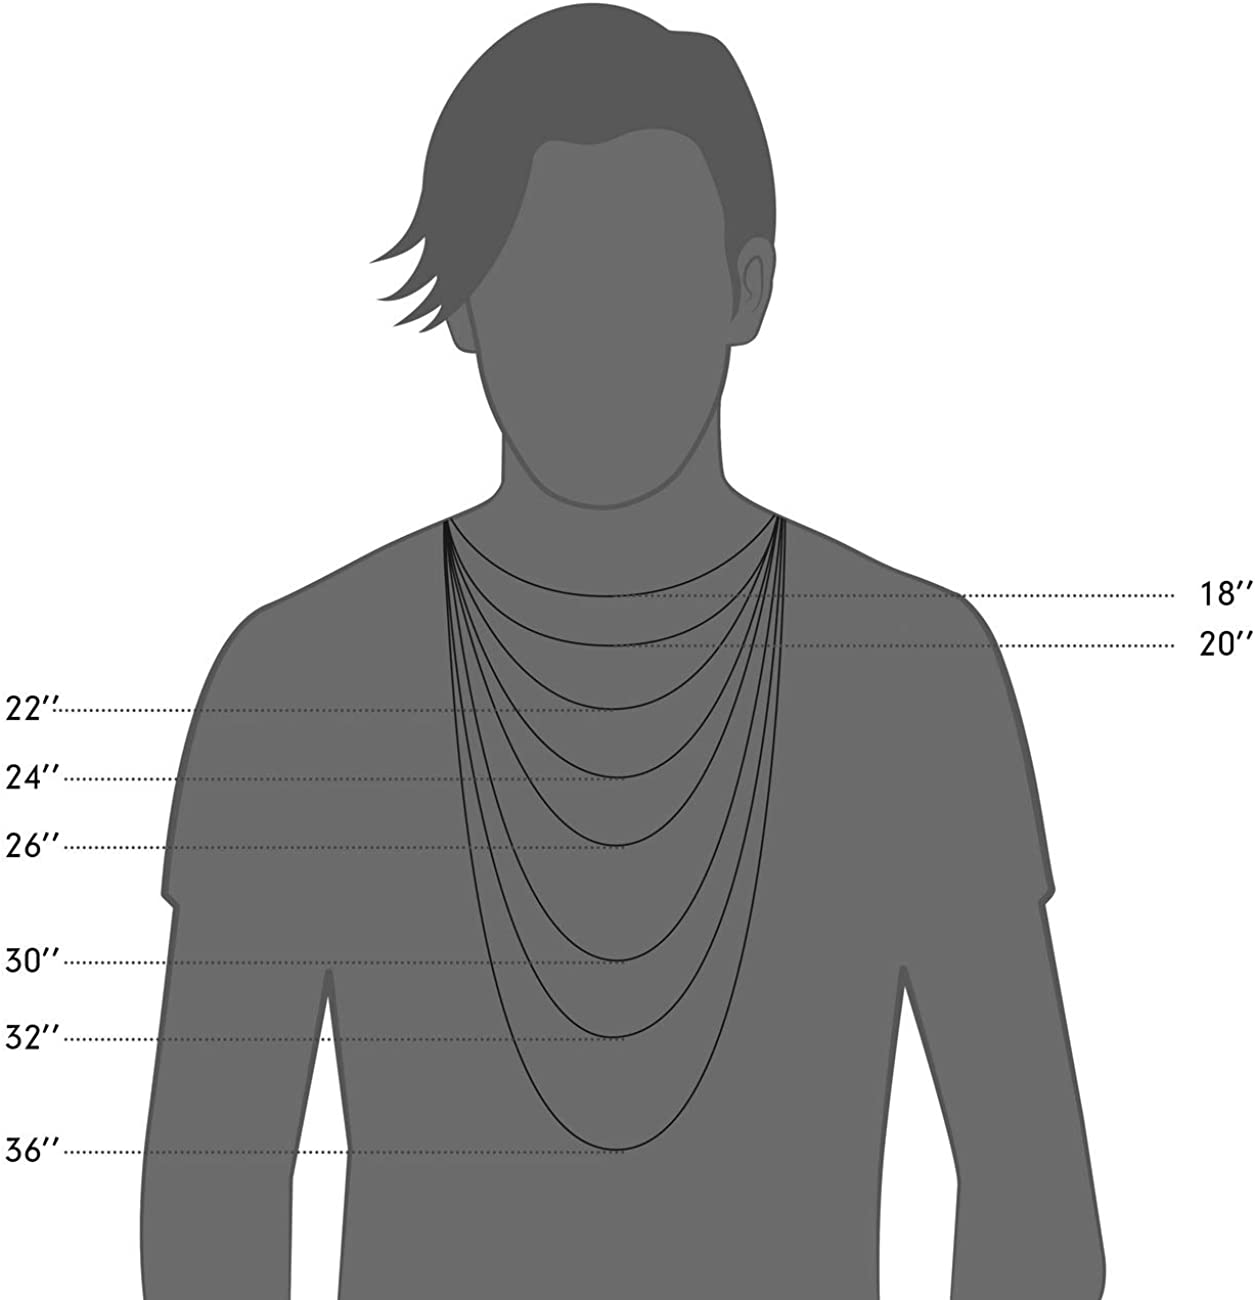 MOWOM Silver Chain Wheat Necklace for Men Women Boys Kids 316L Stainless Steel Water Resistant Cuban Link Chain Wheat Thick Jewelry